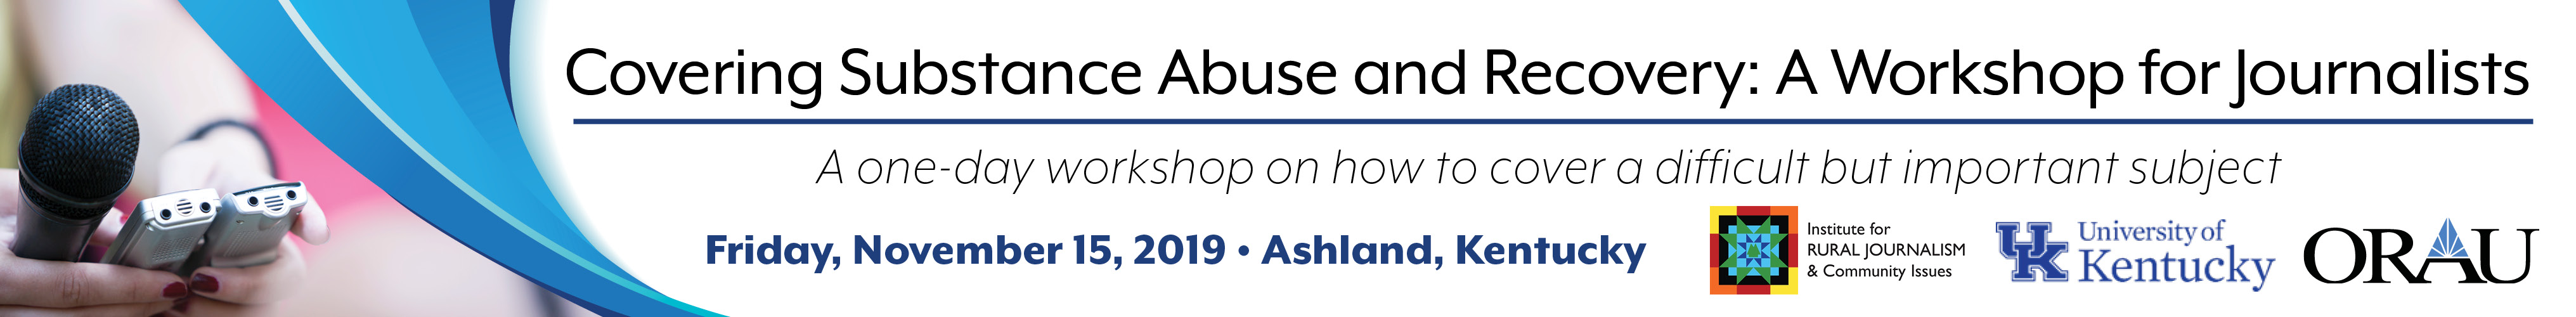 Covering Substance Abuse and Recovery: A Workshop for Journalists